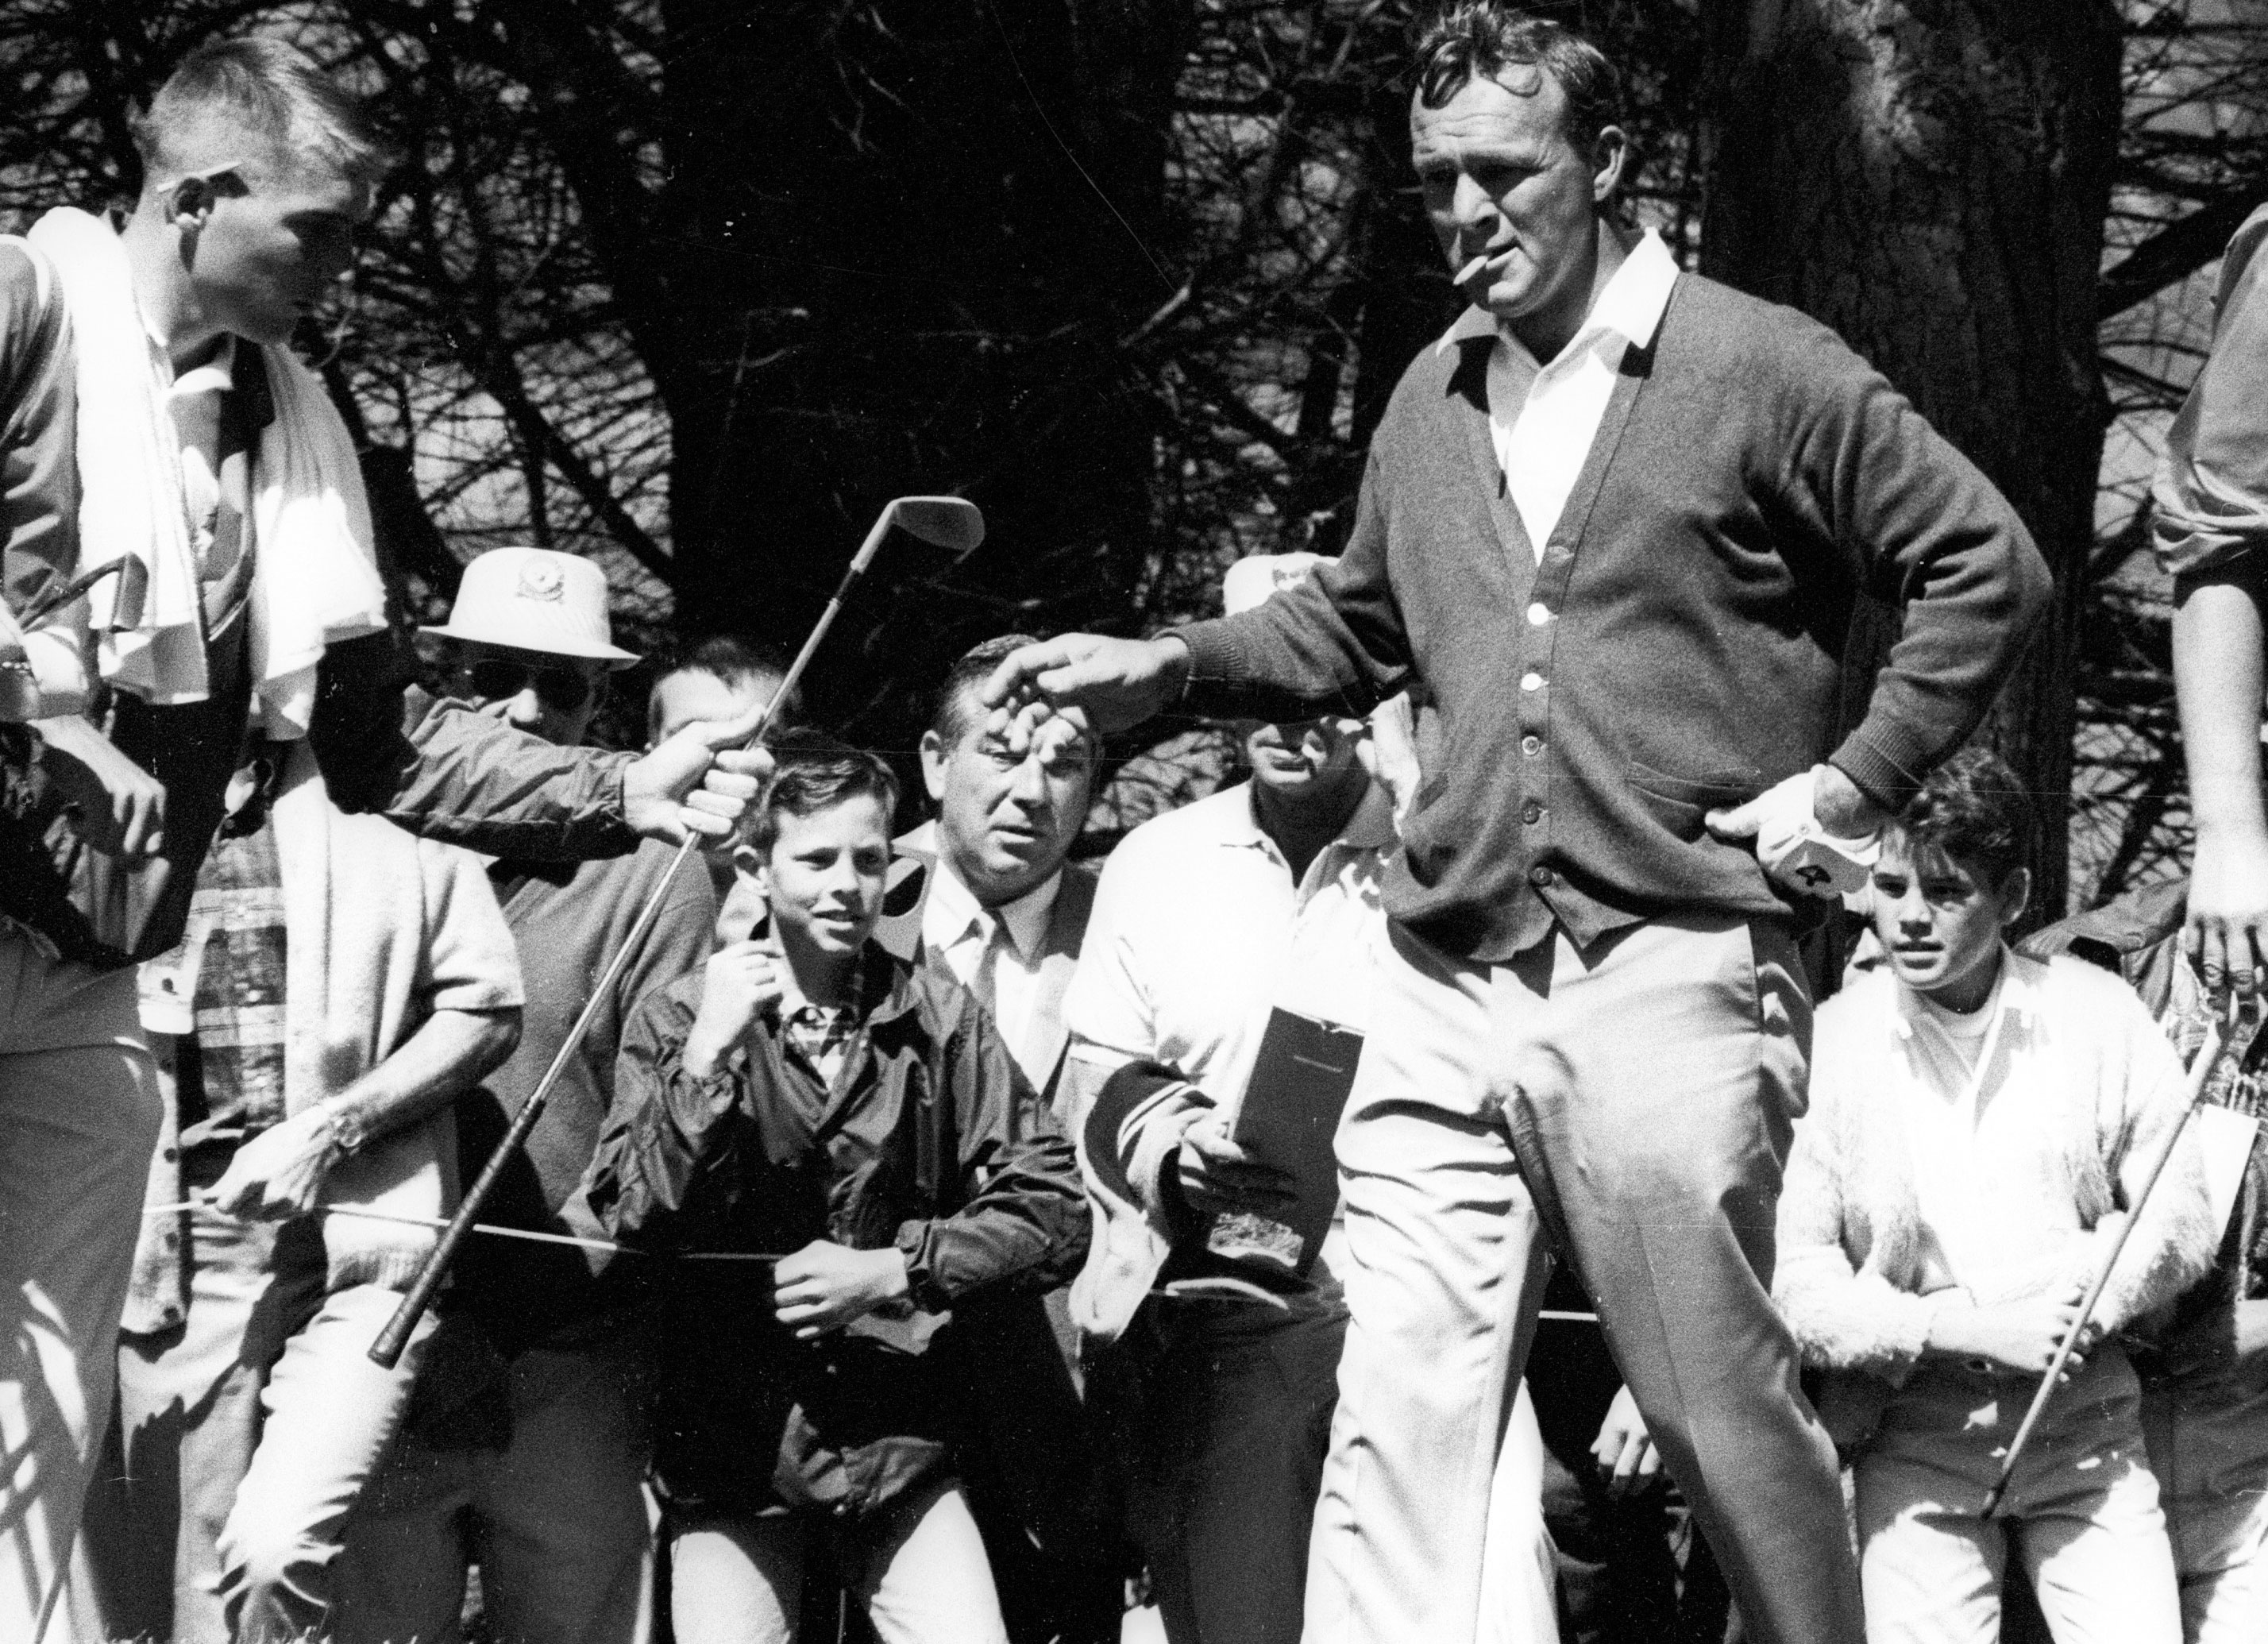 Arnold Palmer hands his club to a caddie while smoking a cigarette during Sunday play in the 1966 U.S. Open at The Olympic Club in San Francisco. Palmer lost a seven shot lead to Billy Casper in the final nine holes. Casper won the Monday playoff, firing a 69 to Palmer's 73. Palmer quit smoking for good in 1970.